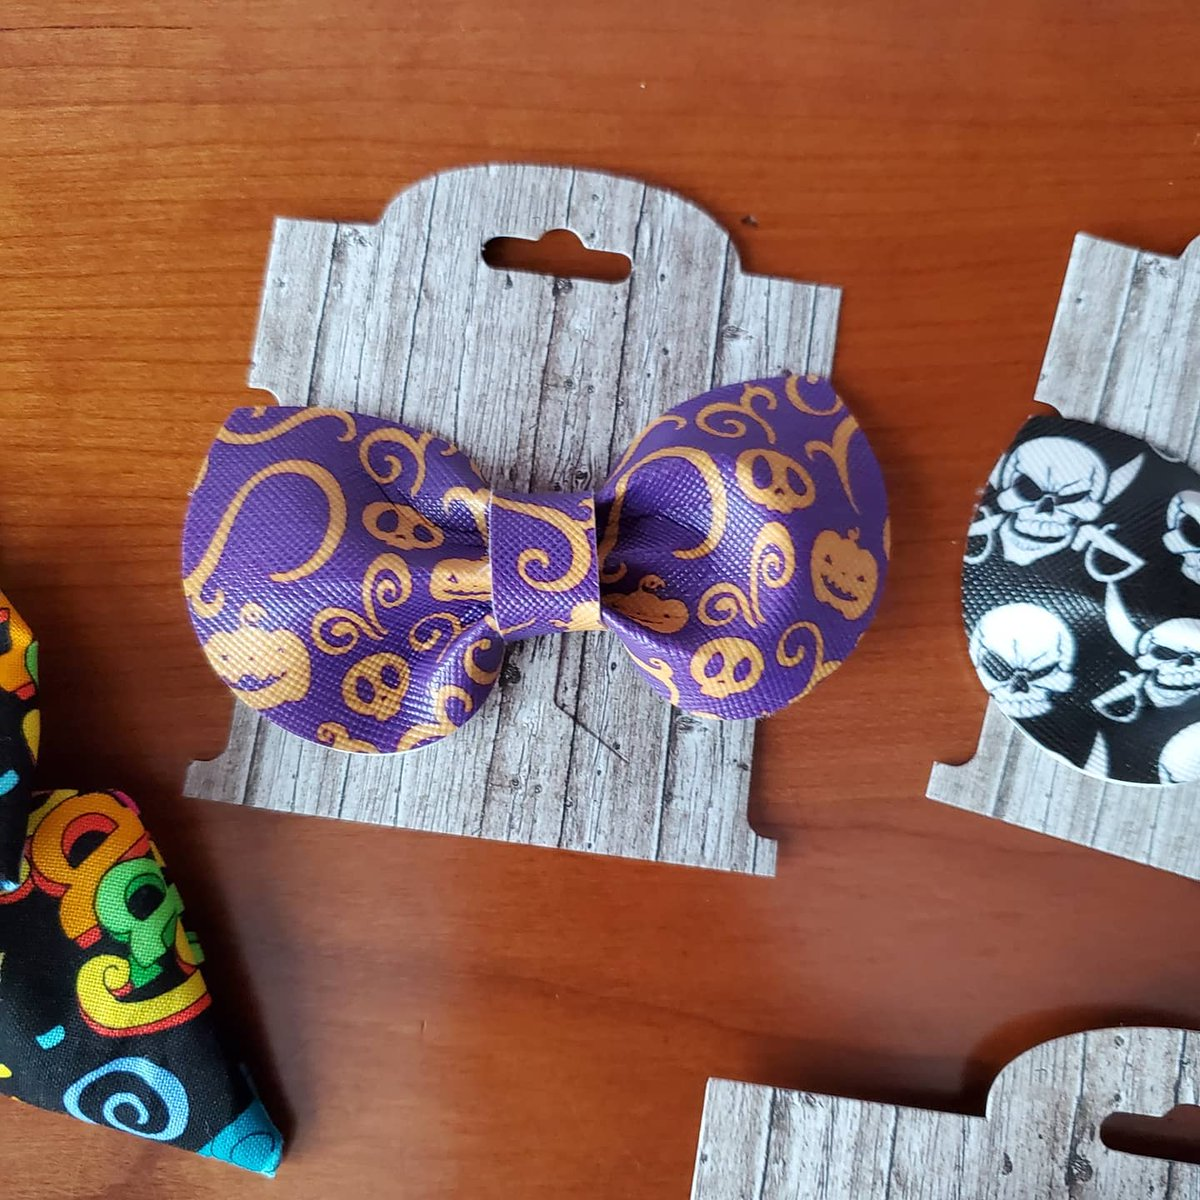 Halloween on my mind.....will there be trick or treating this year?  #Halloween2020 #halloween #SarahBBowtique #hairbows #2020worstyear #COVID__19 #pumpkin  #Purplepic.twitter.com/o8kgZIewNX